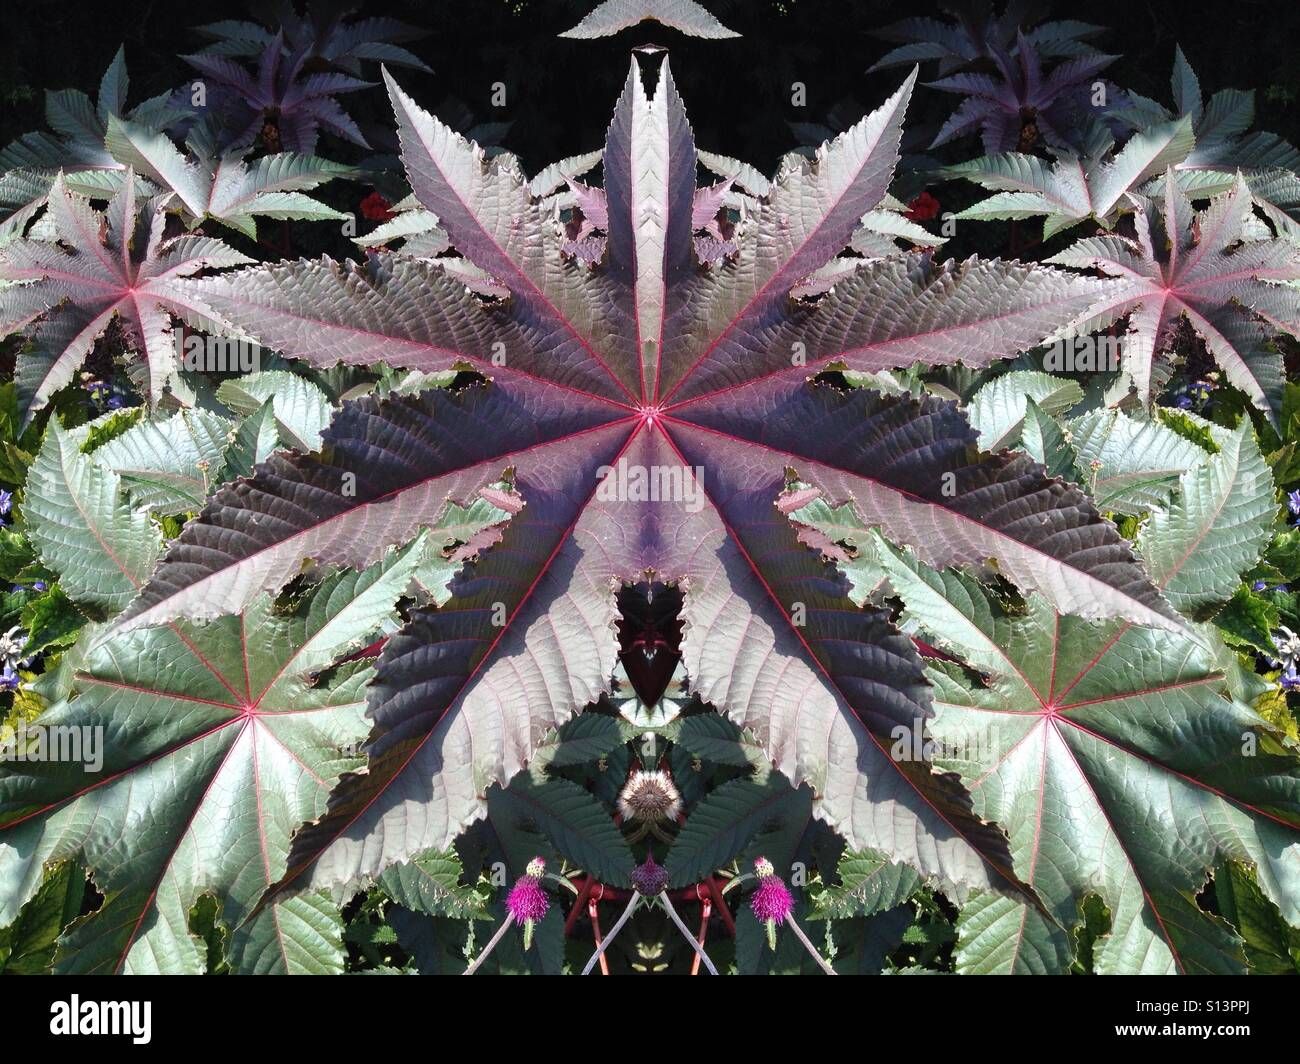 Photo manipulation of an interesting leaf - Stock Image